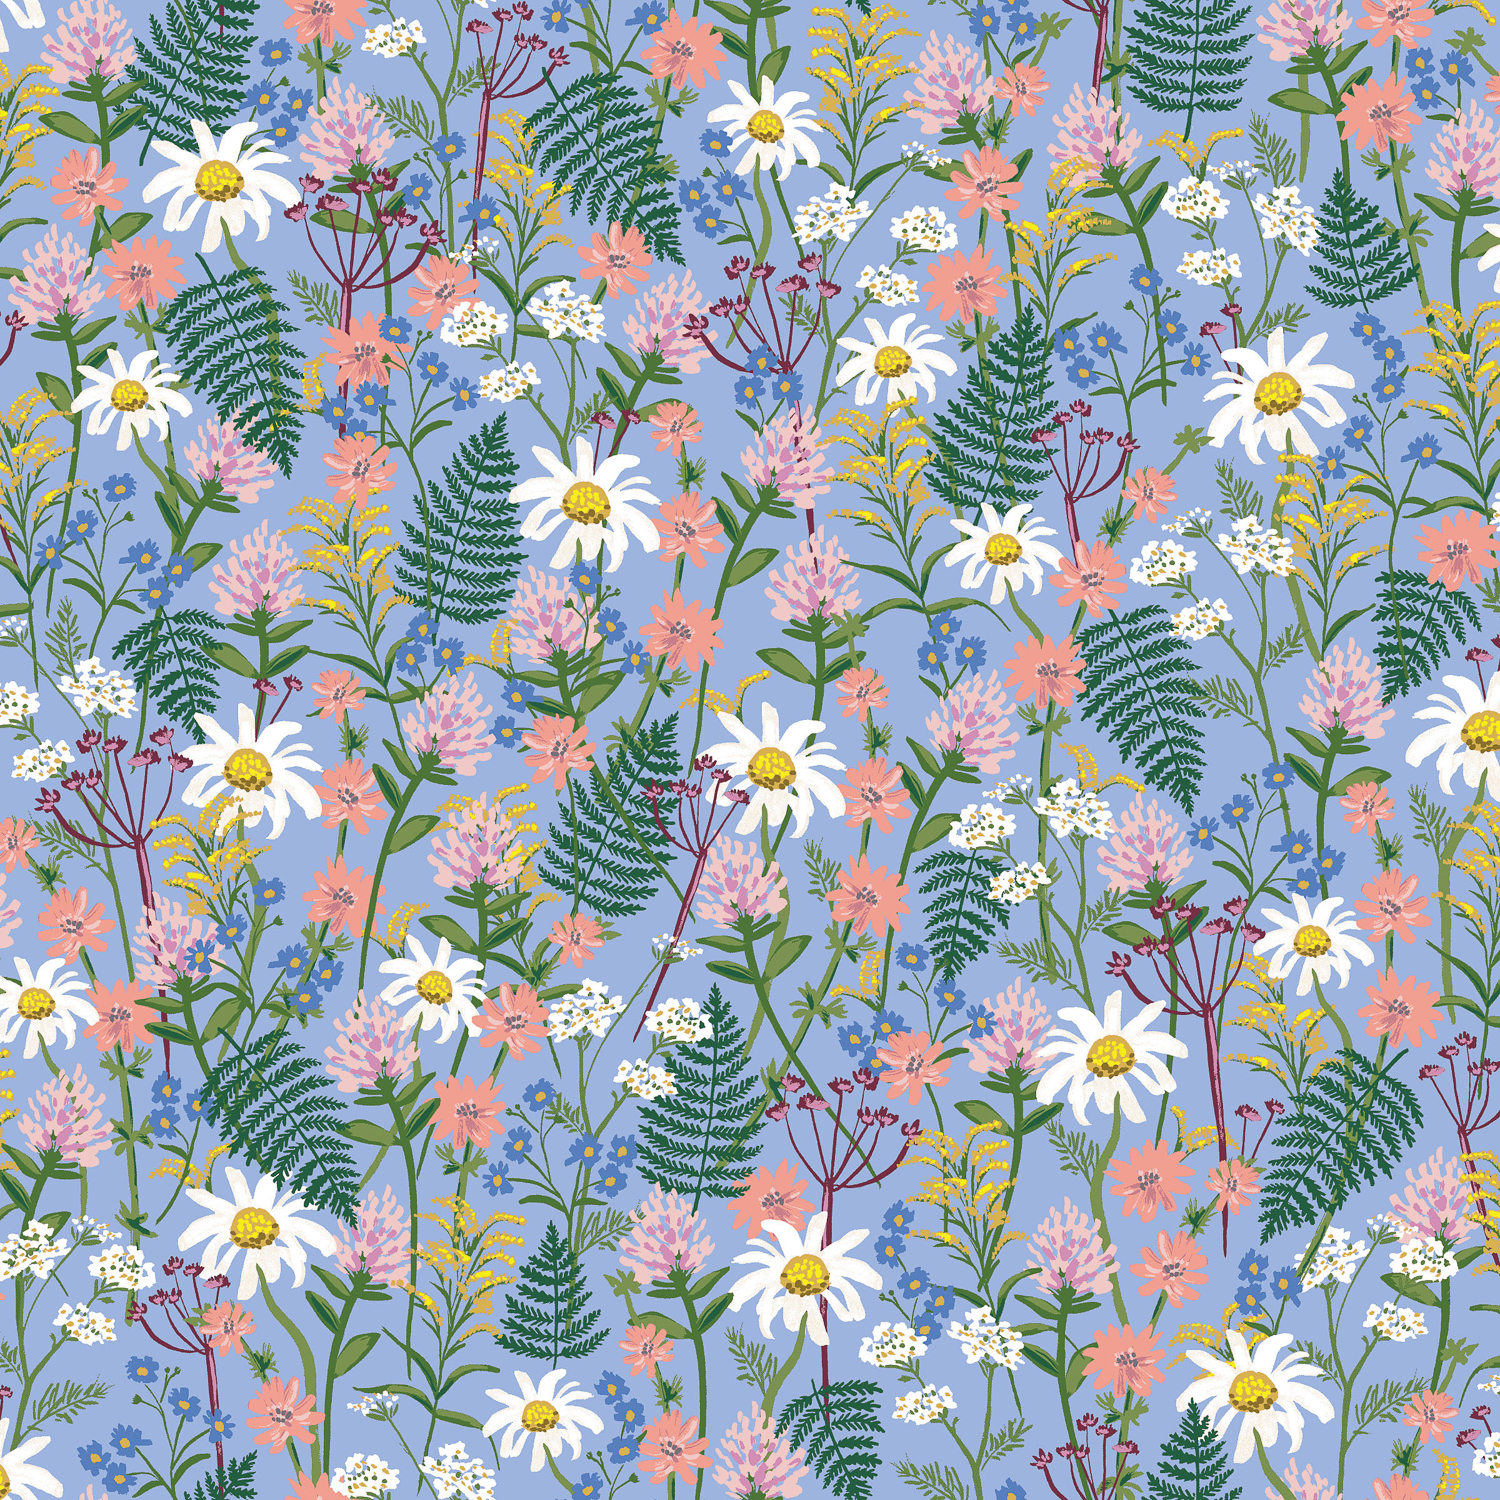 Cotton + Steel - Wildwood - LAWN - Wildflowers (Periwinkle)